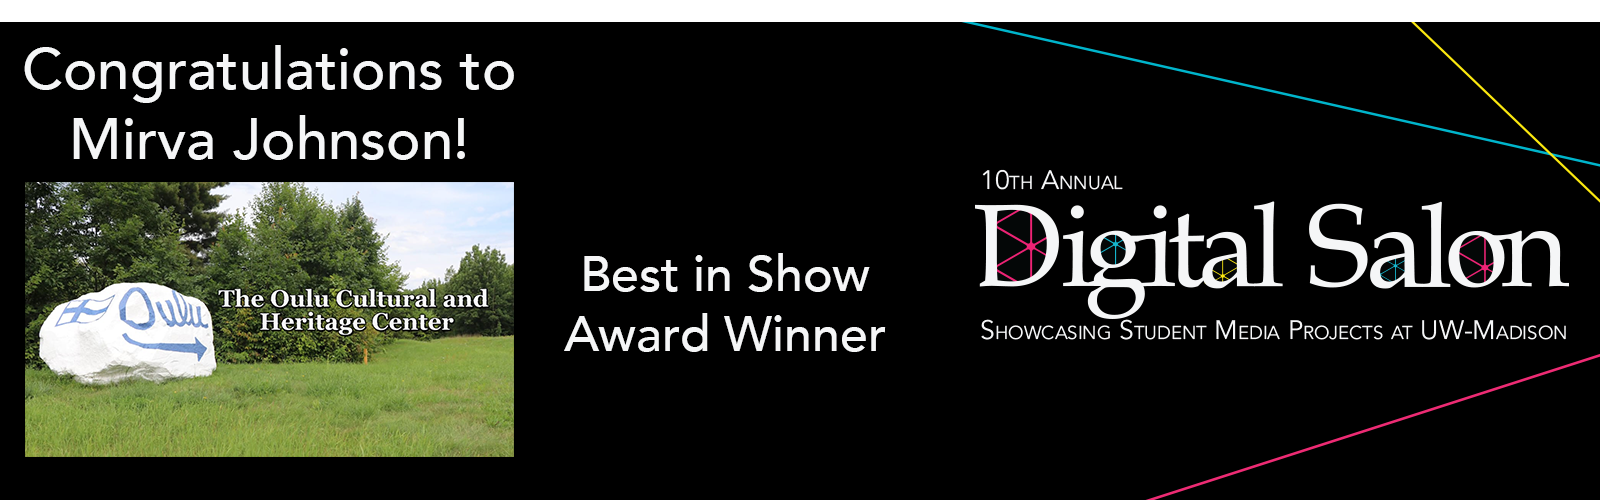 10th Annual DS Banner - Best in Show